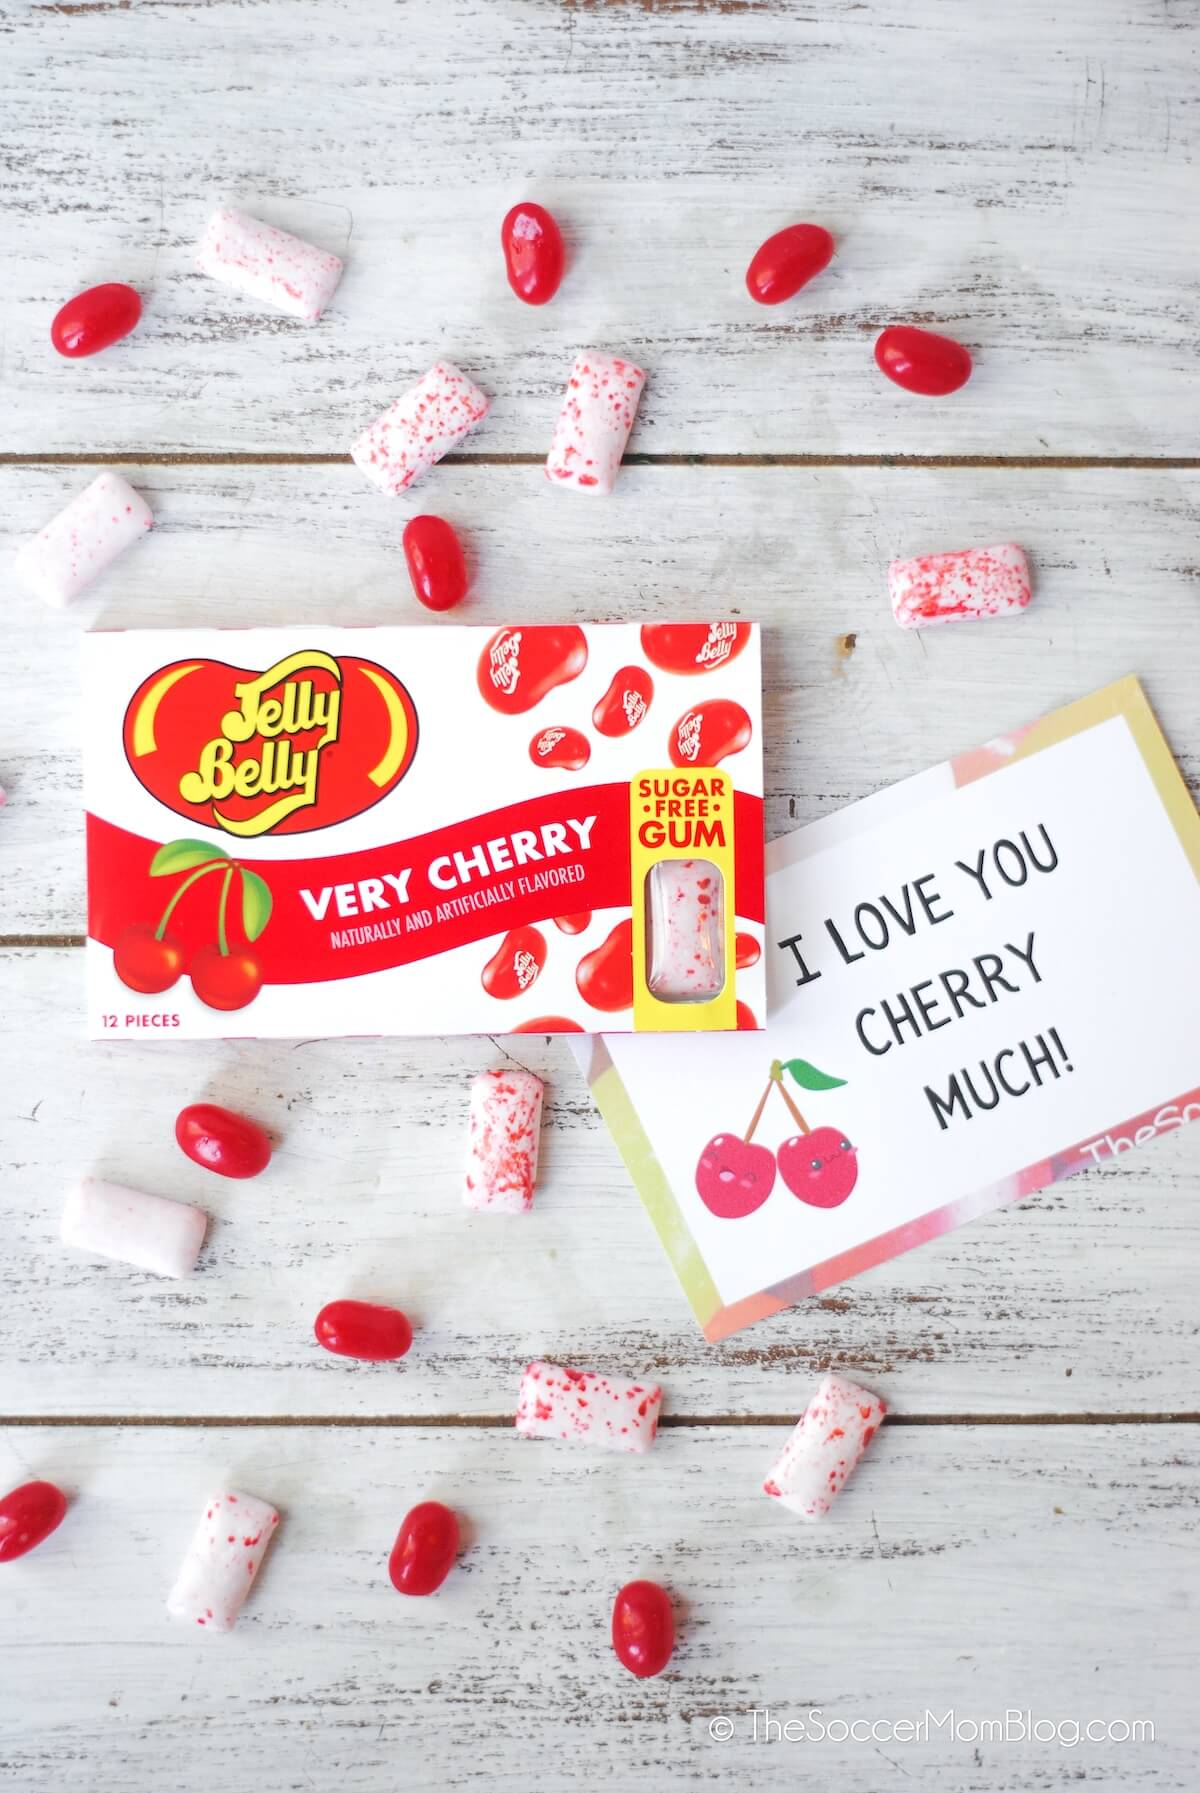 Jelly Belly Wild Cherry Gum with printable gift tag